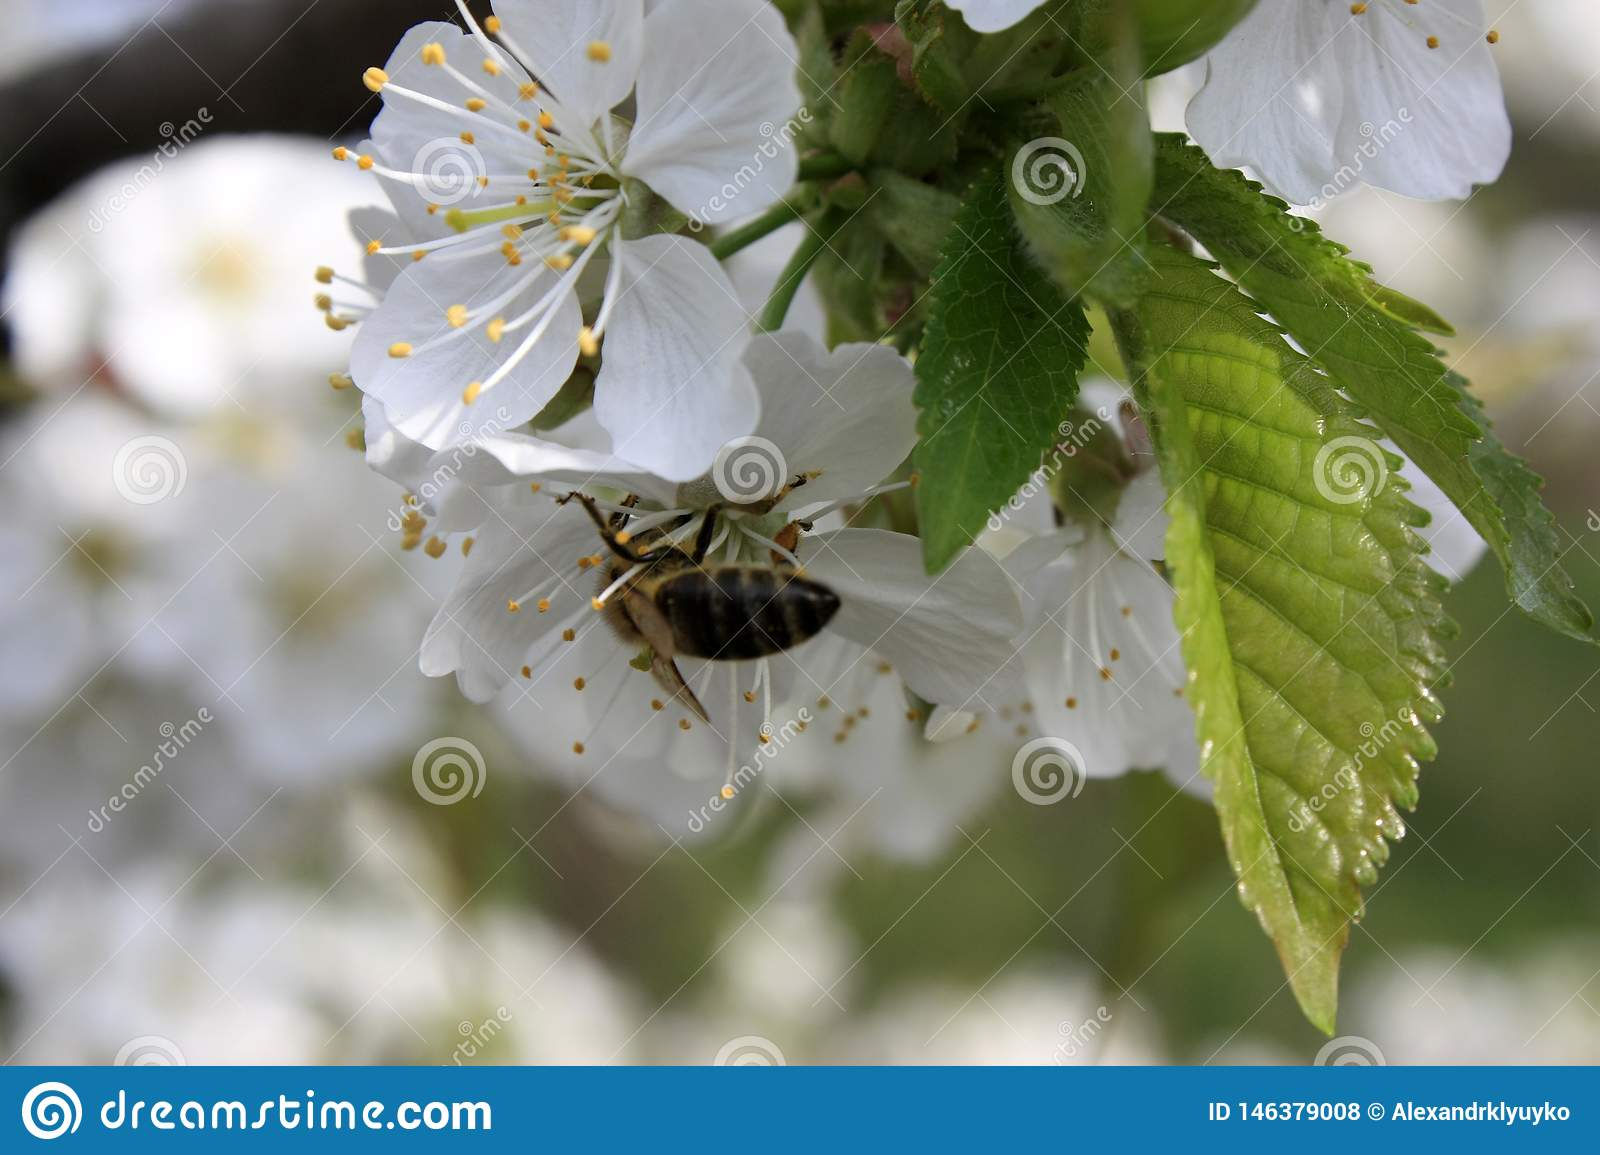 A blooming fruit tree with a bee on a white-pink flower. Blurred background, clear sunny spring day. macro photo